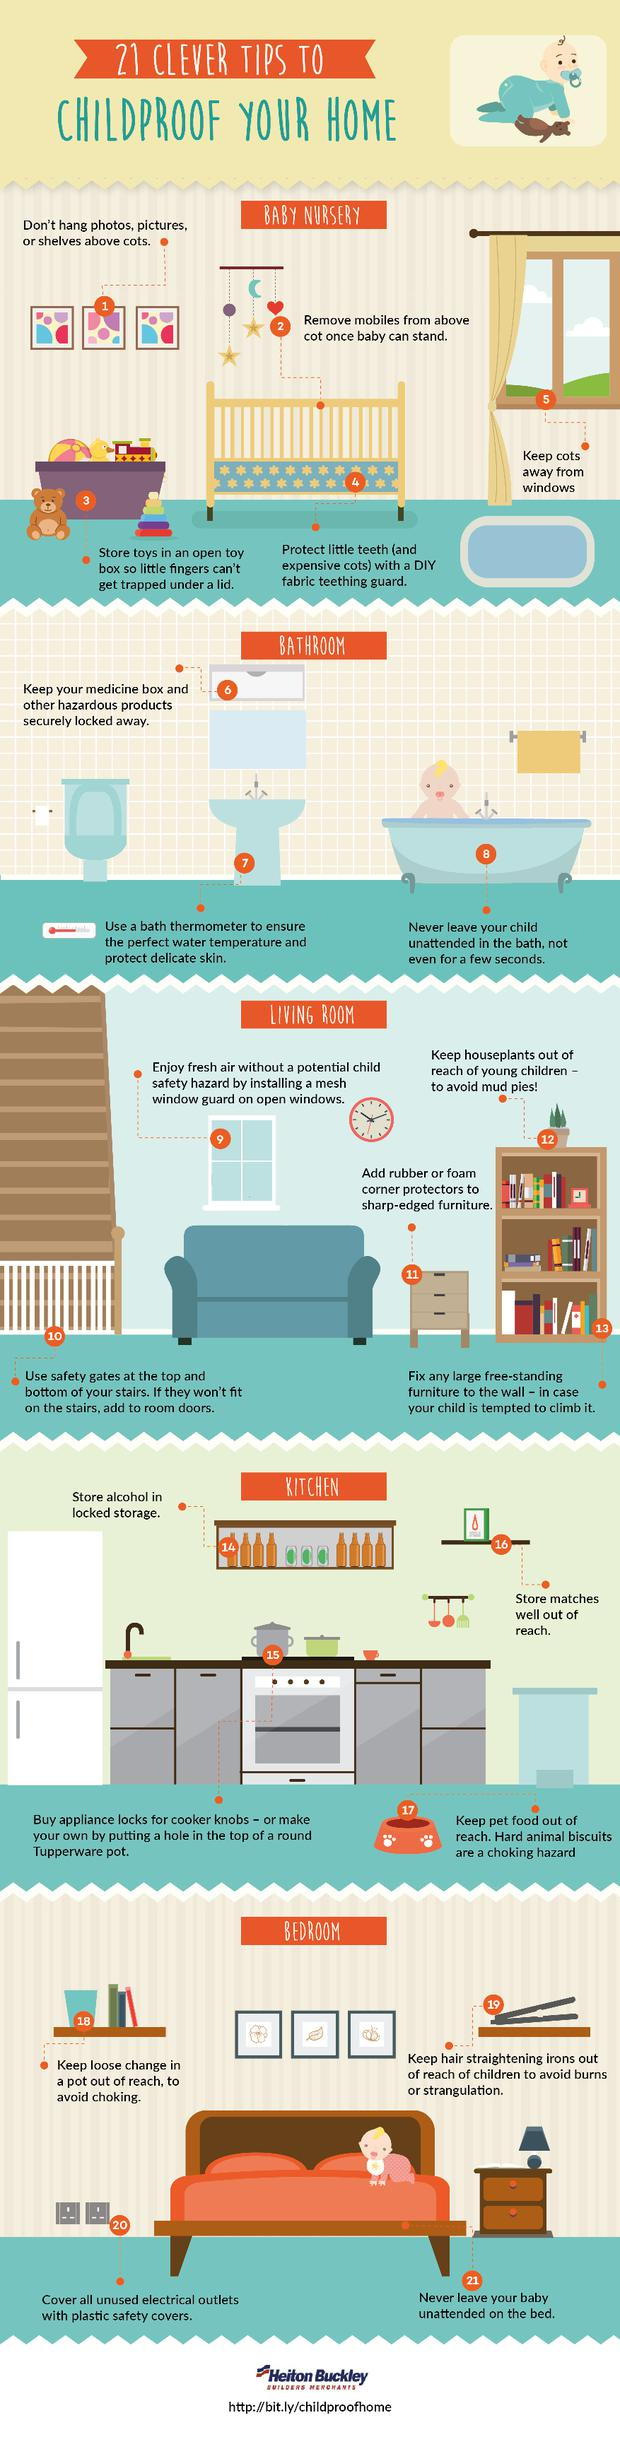 21-clever-tips-to-childproof-your-home.jpg